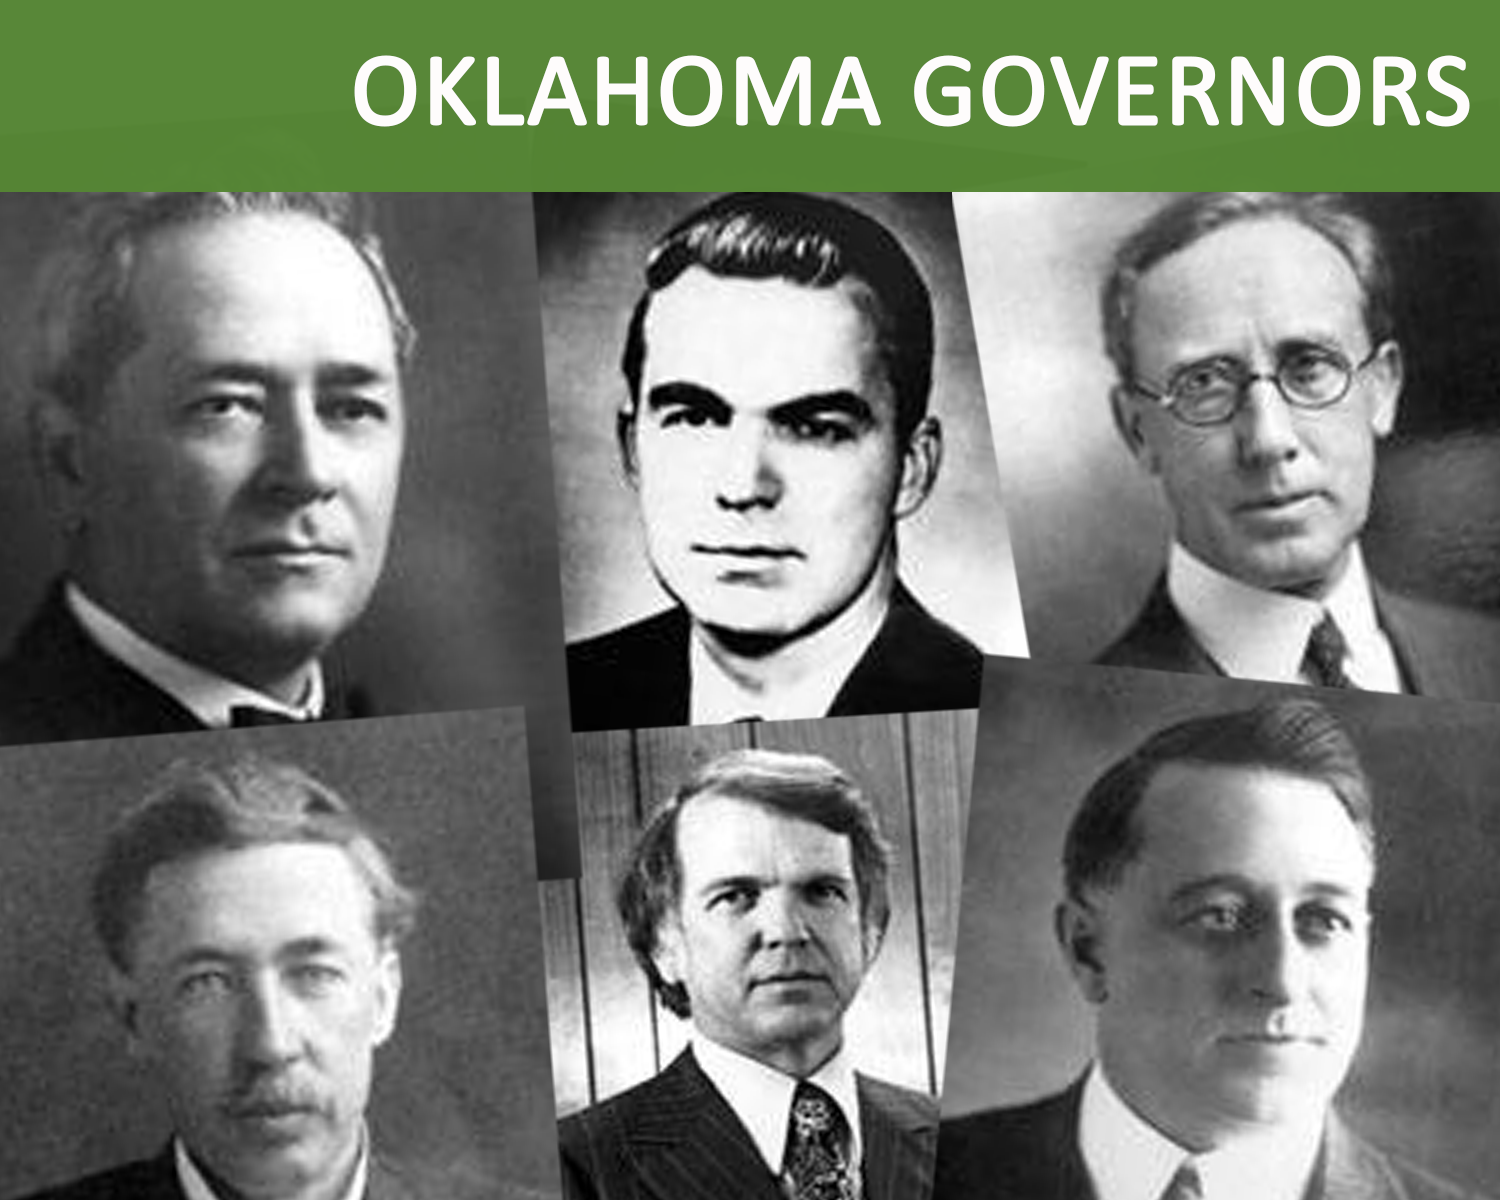 Collection of Oklahoma Governors